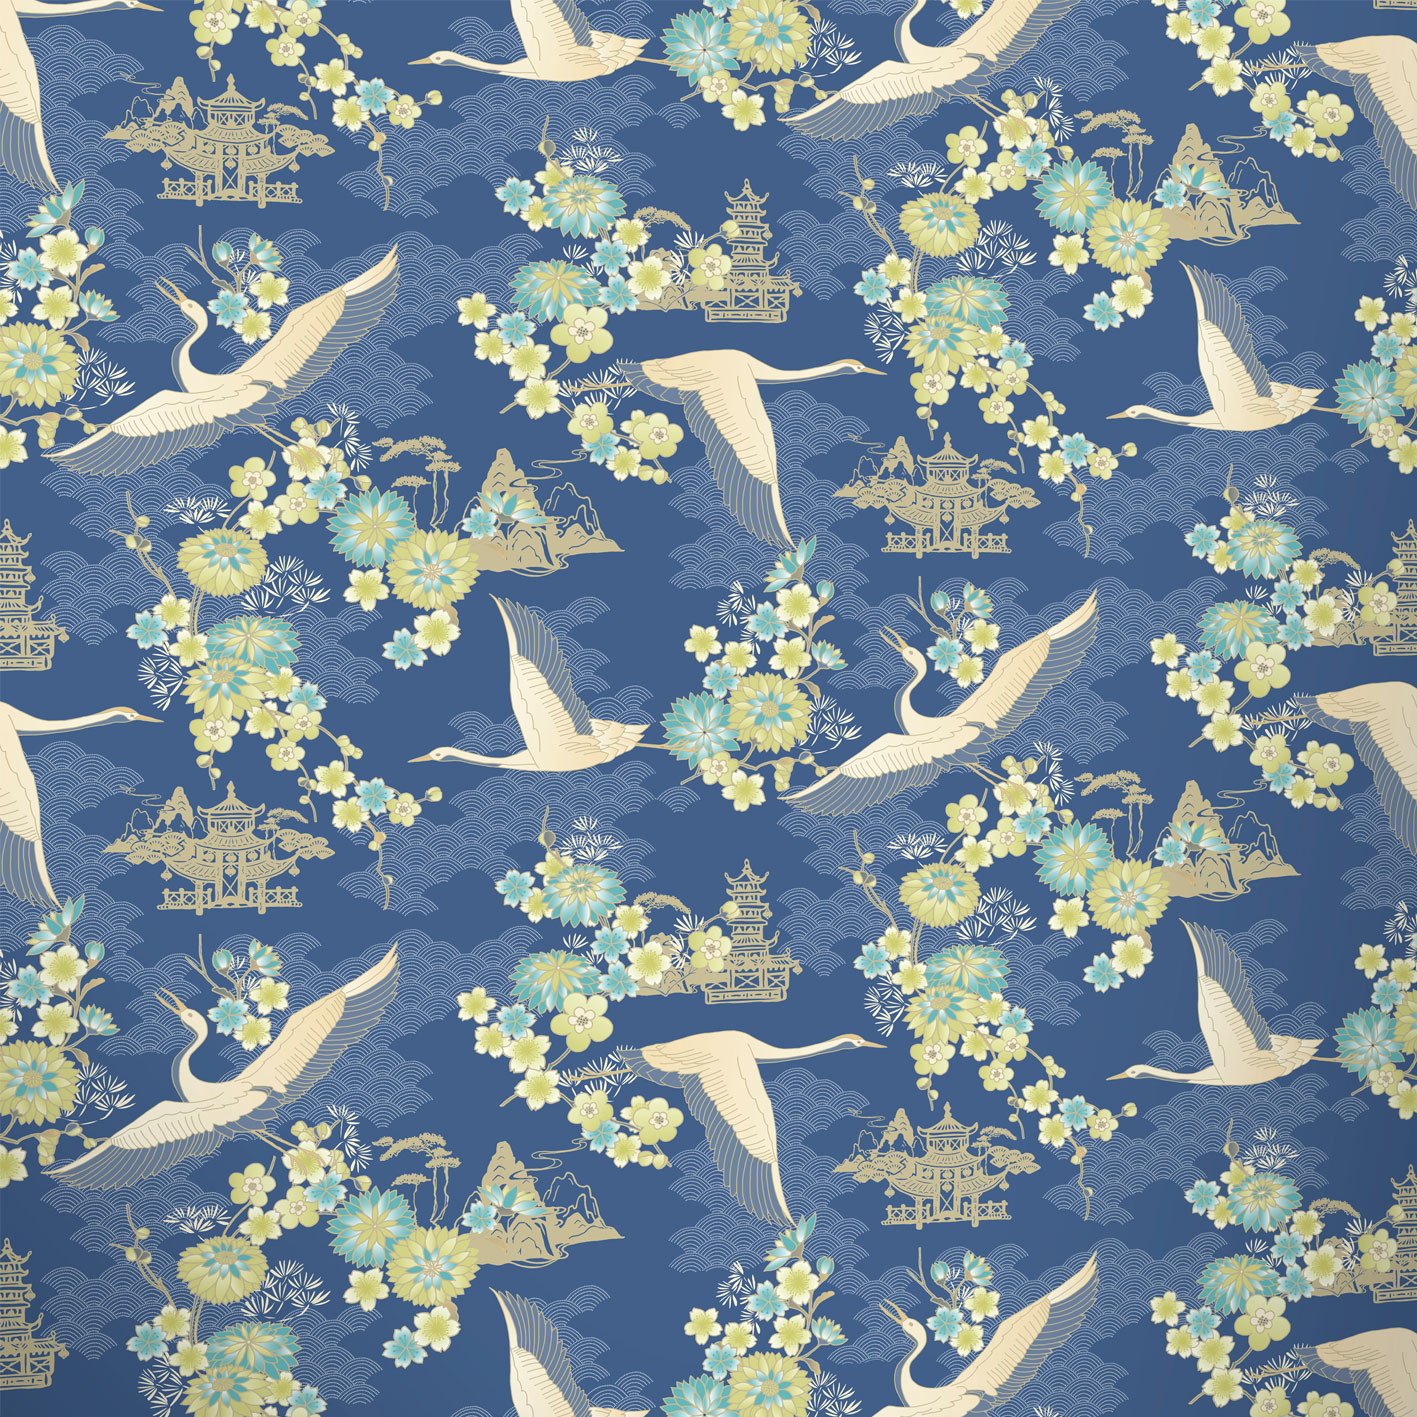 Bird Wallpaper Flower Temples Oriental Theme Floral Metallic Navy